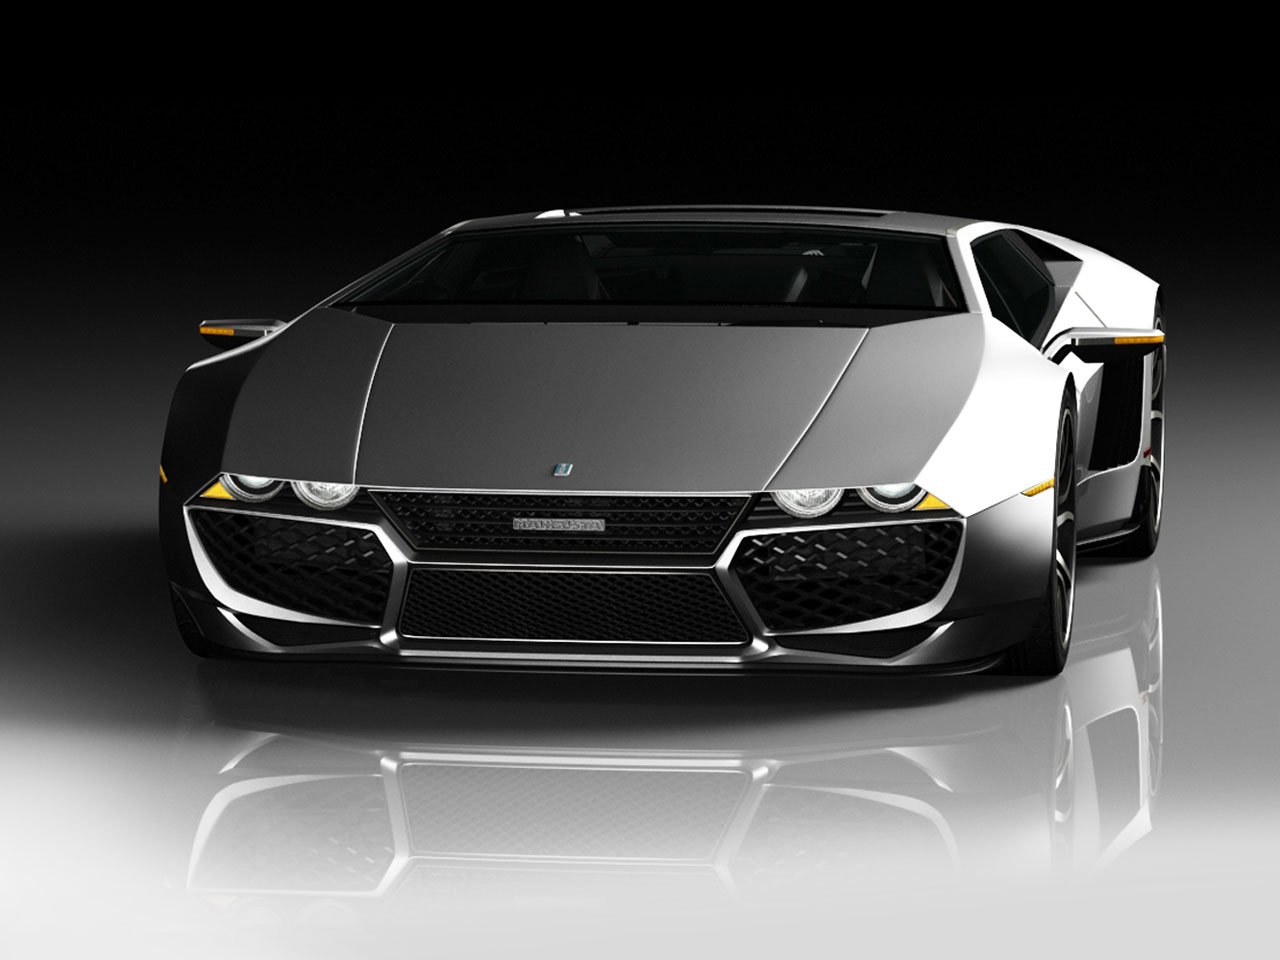 Mangusta-Legacy-Concept-01